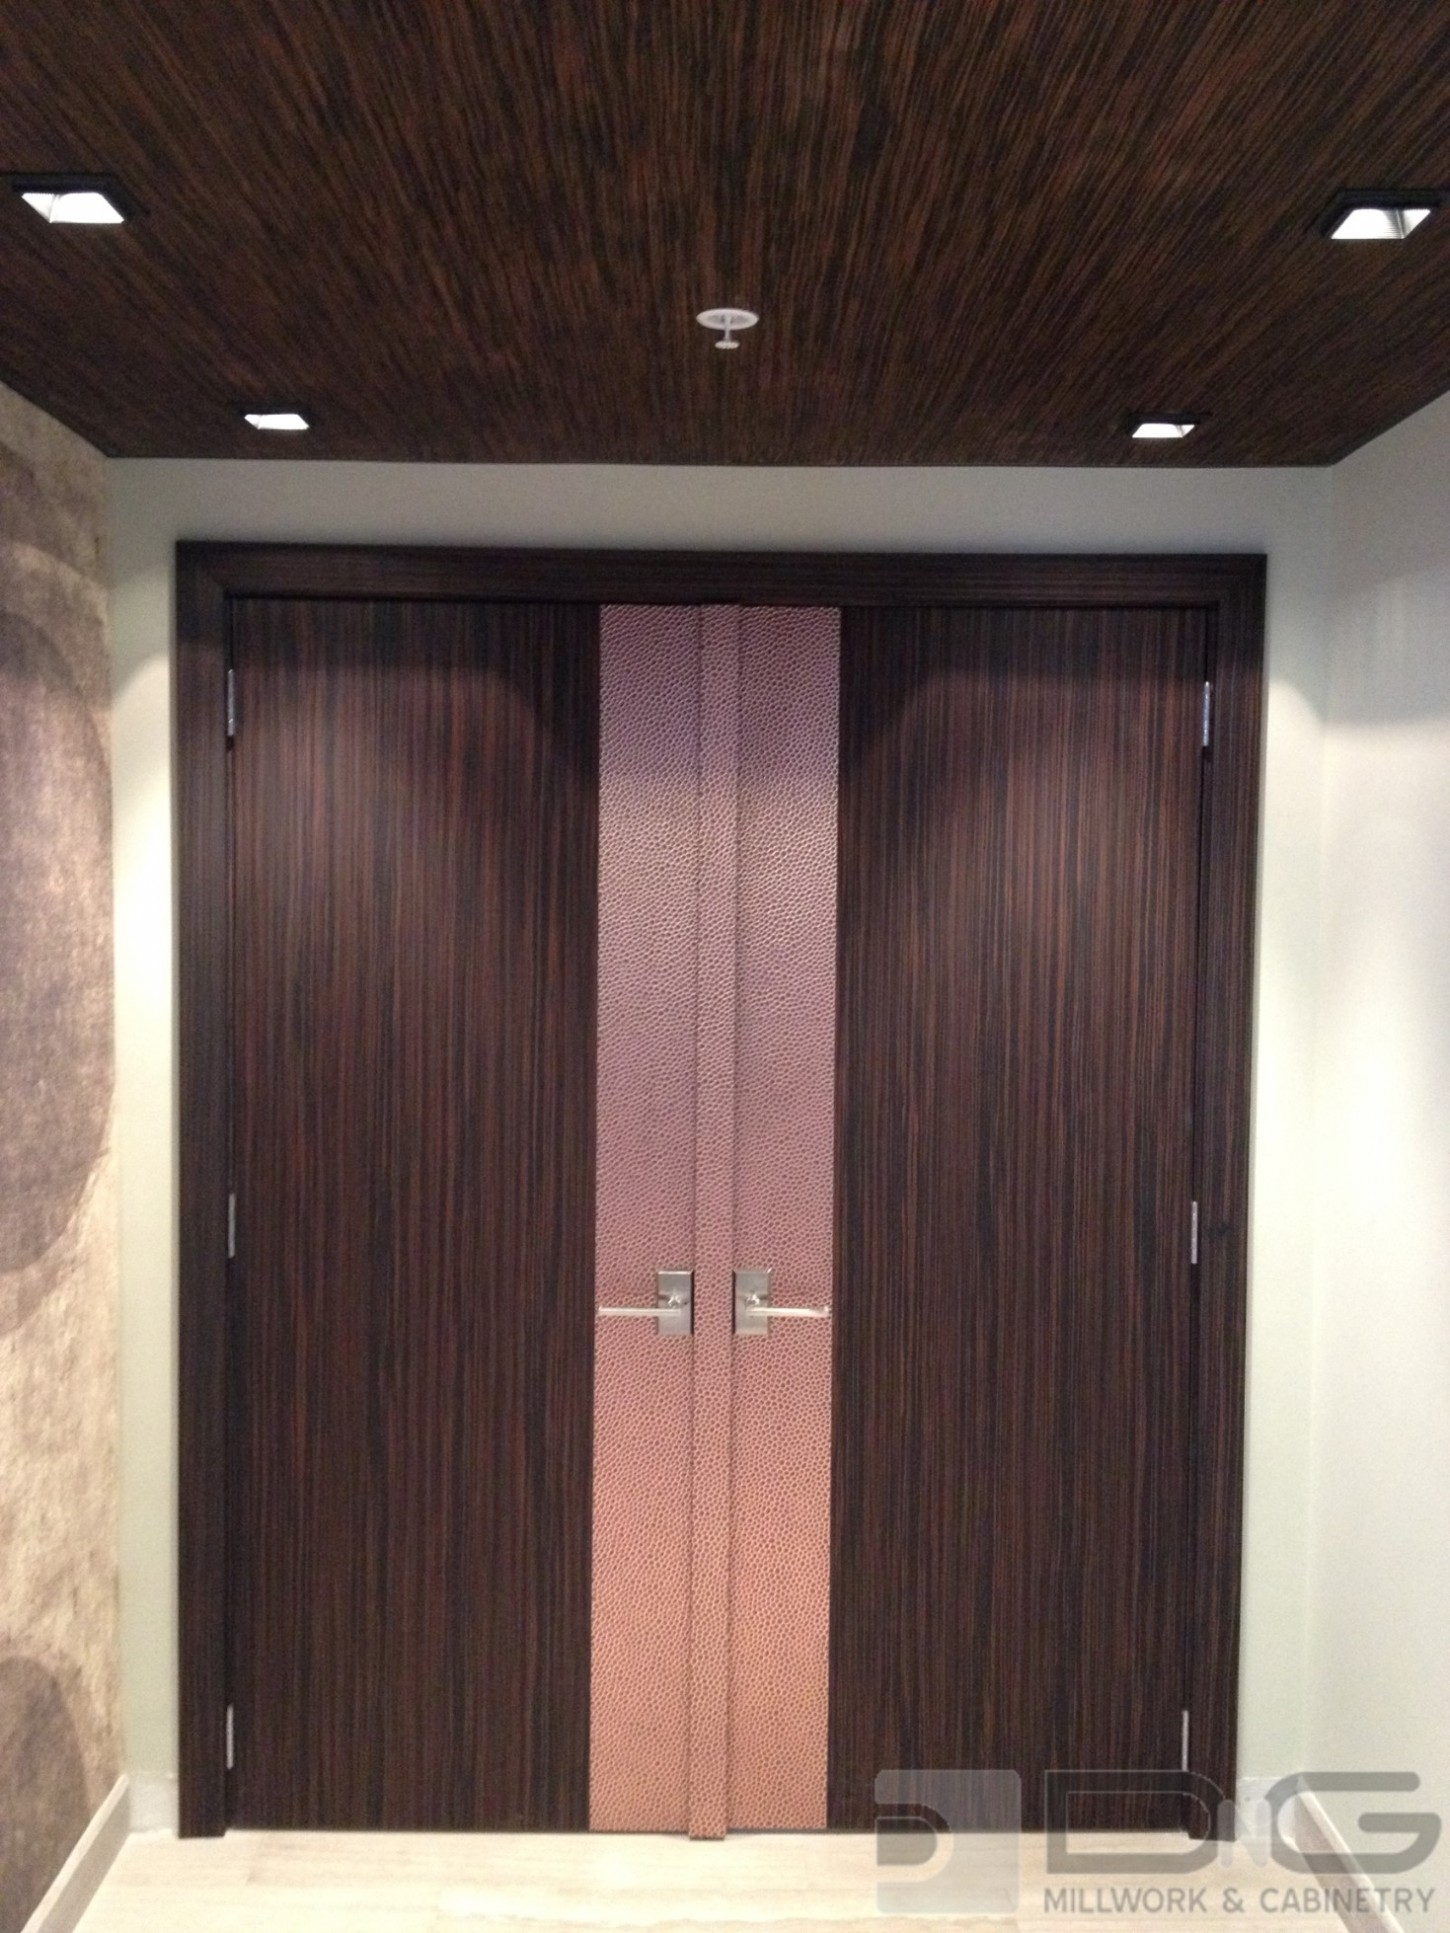 Door and Paneled Ceilings